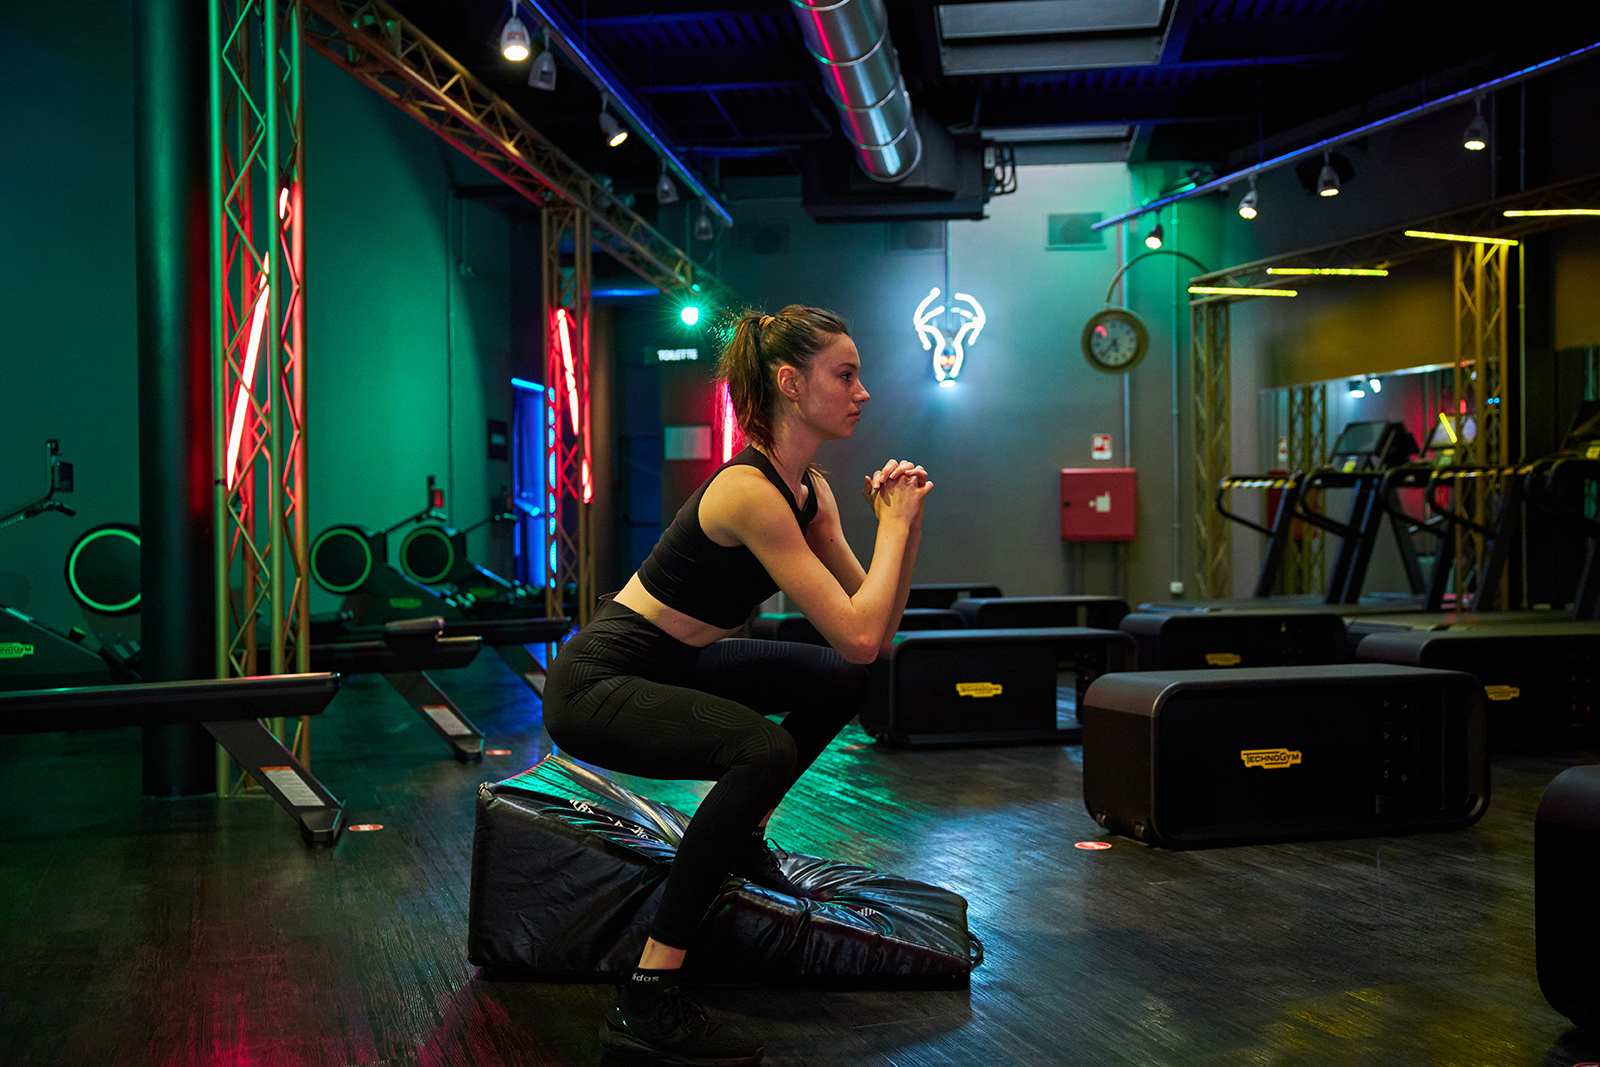 Slowfit cuneo fitness club